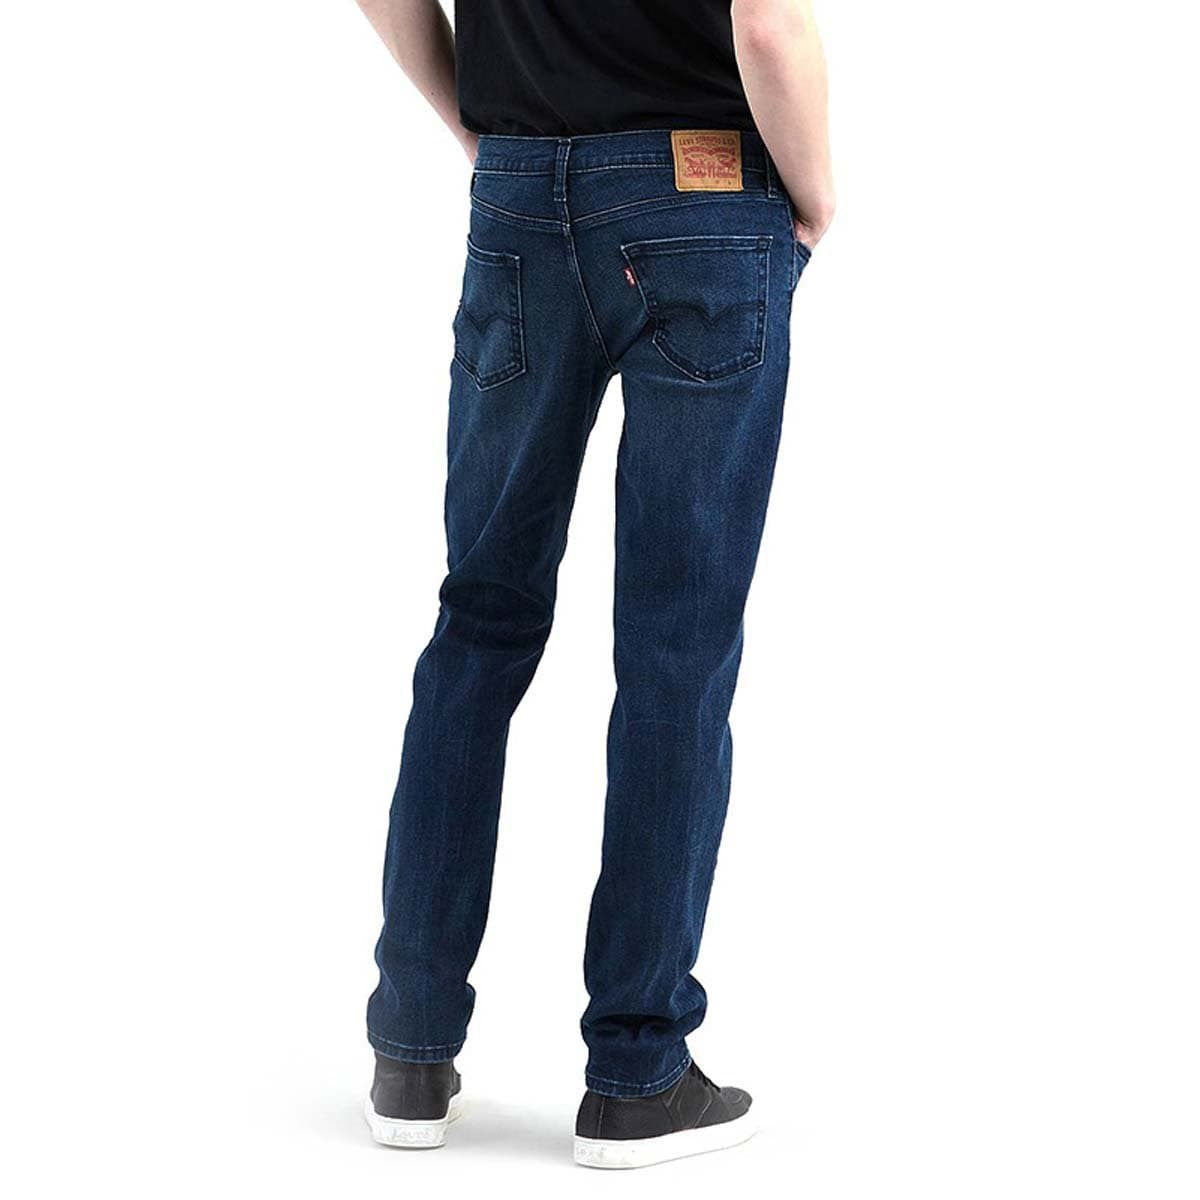 Jeans 511™ Slim Fit Color Azul.